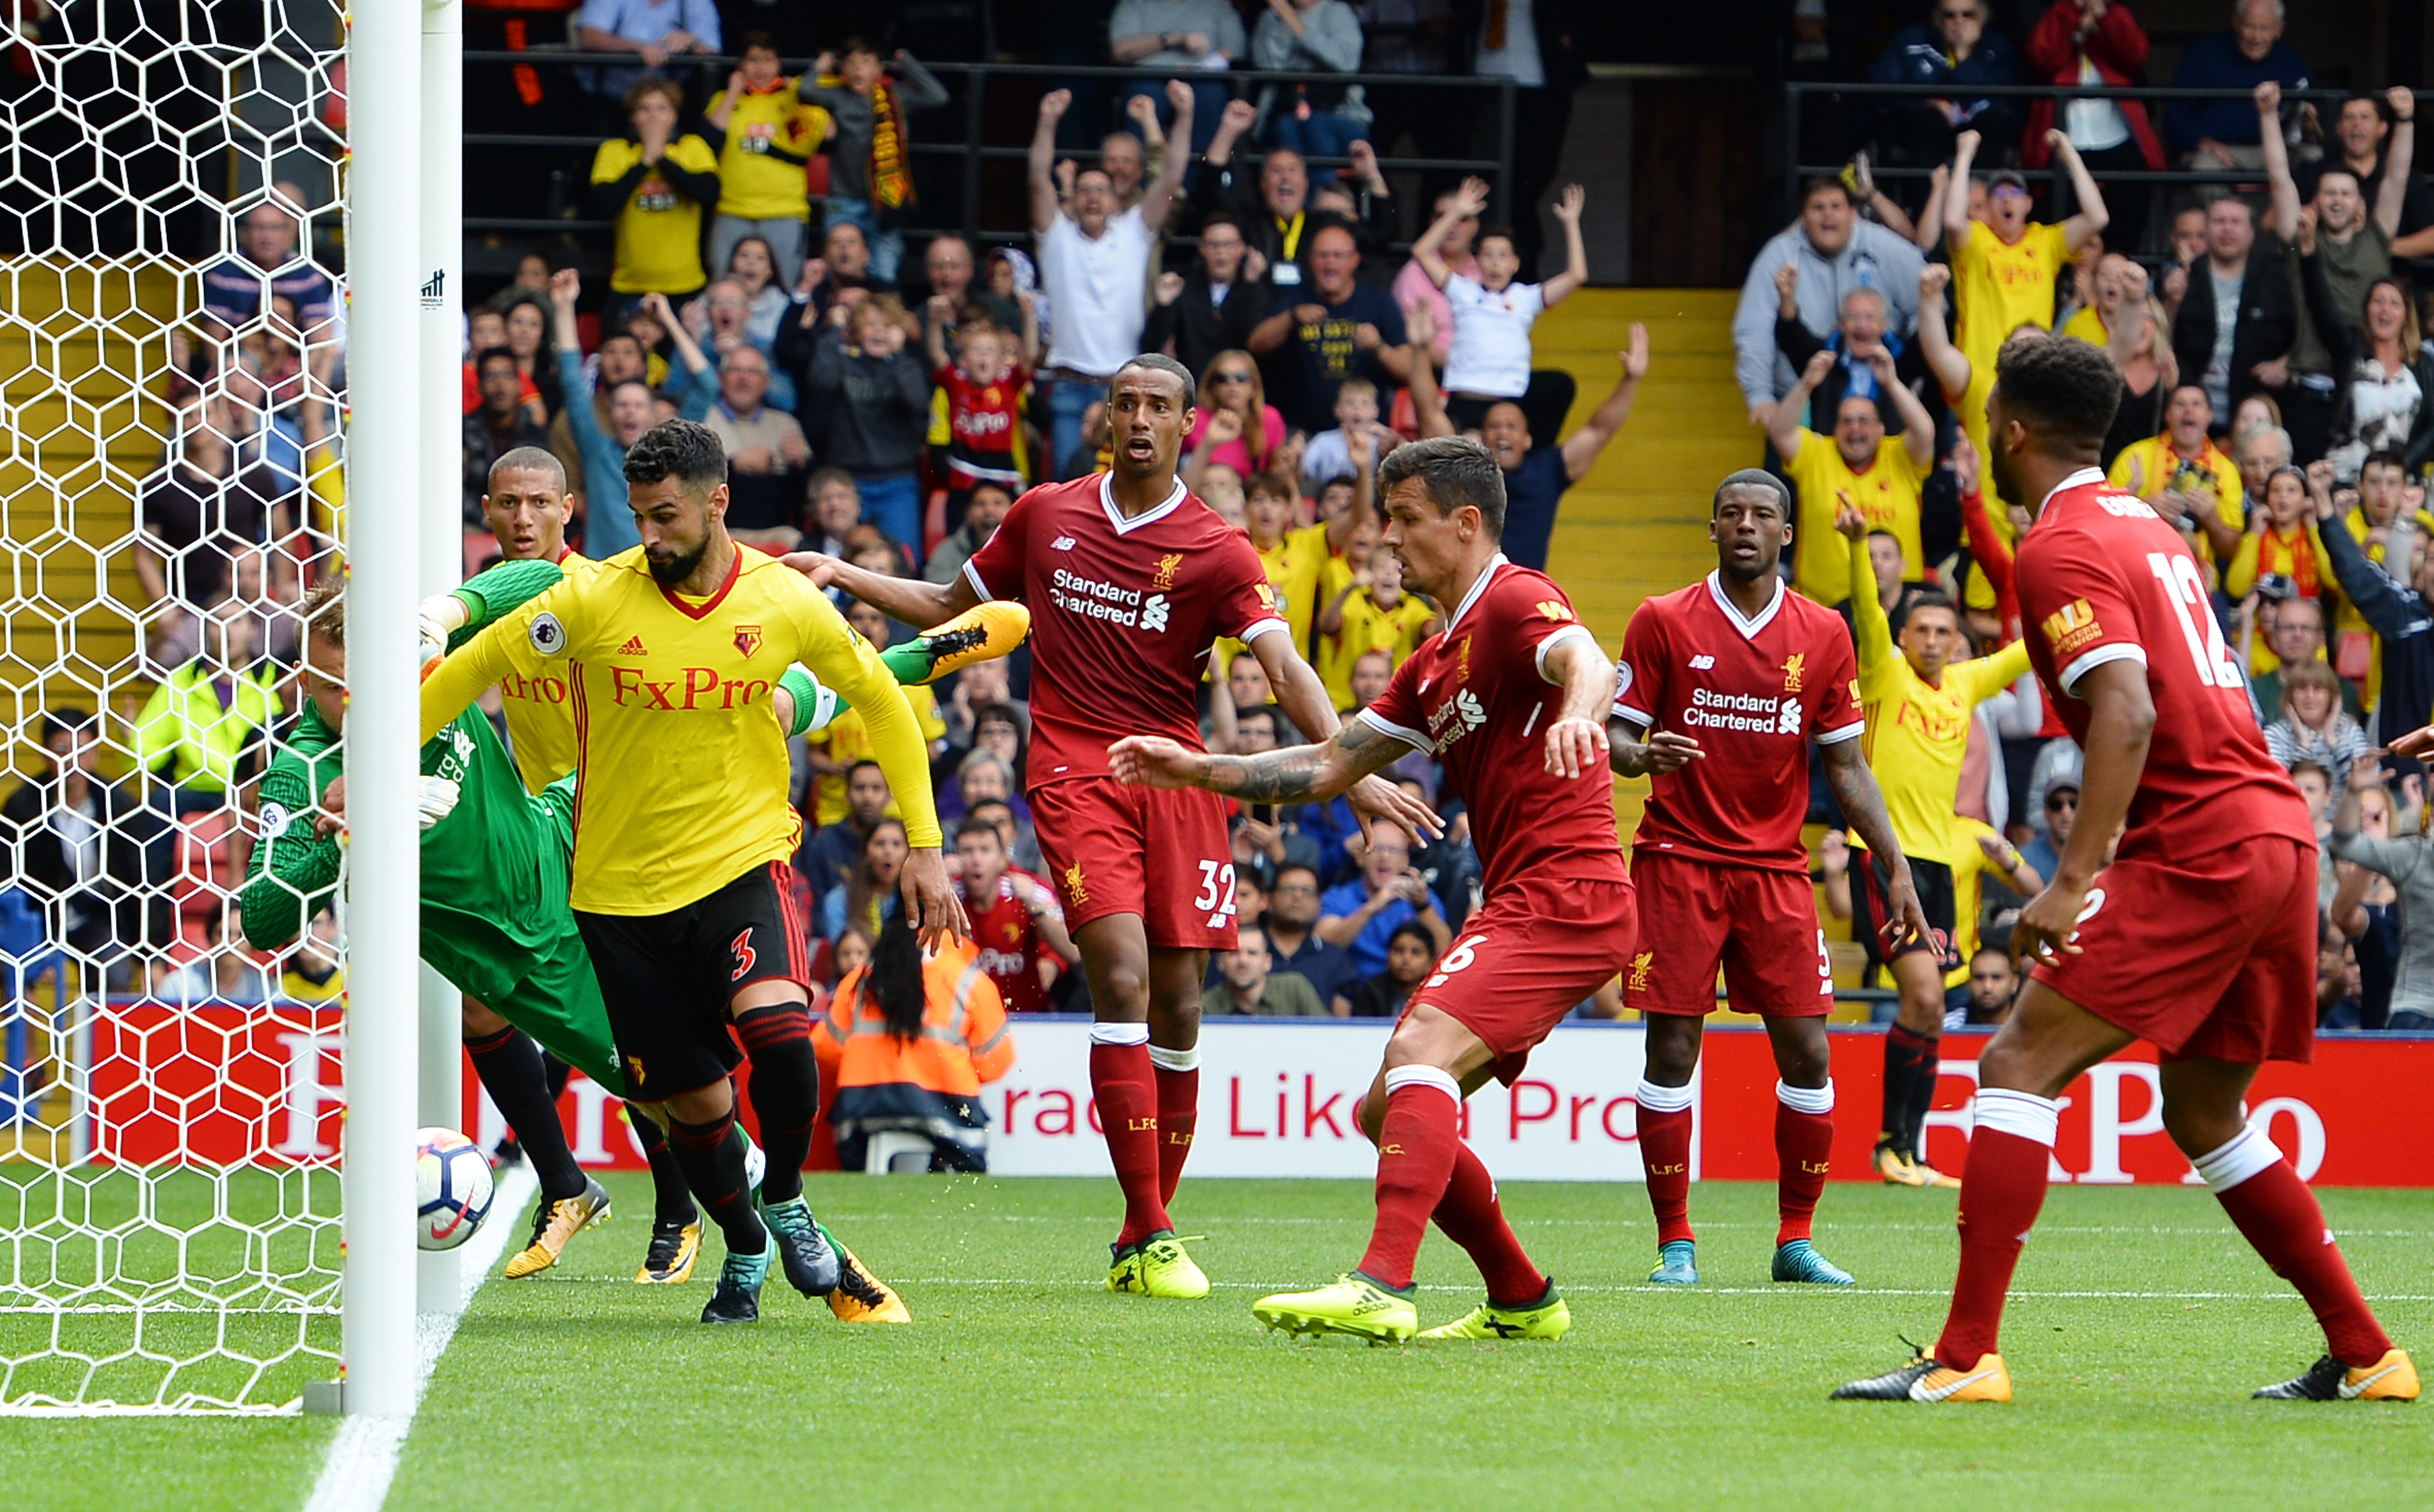 Liverpool draw 3-3 to Watford after conceding late goal screamer — BPL